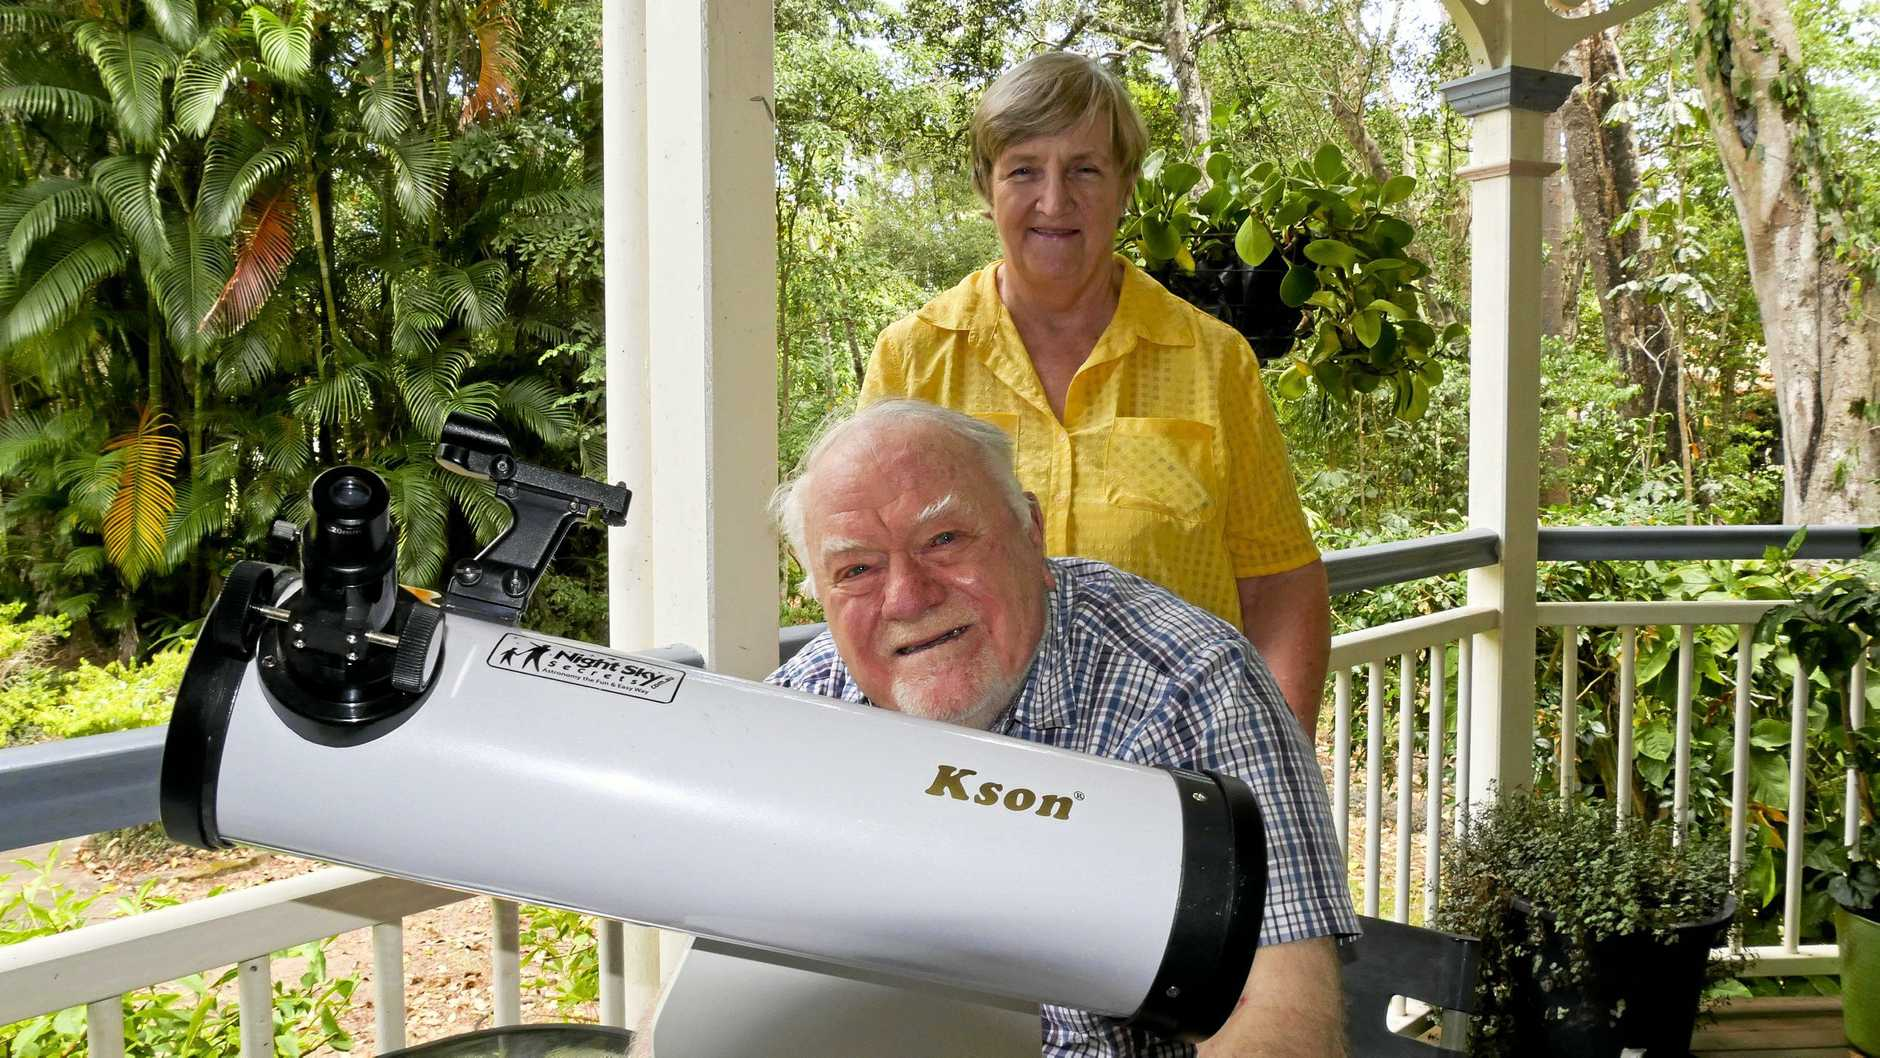 Ray Johnston, 85, and his wife Libby, 68, who have traveled the world in pursuit of astronomy. They currently live in Dundowran Beach